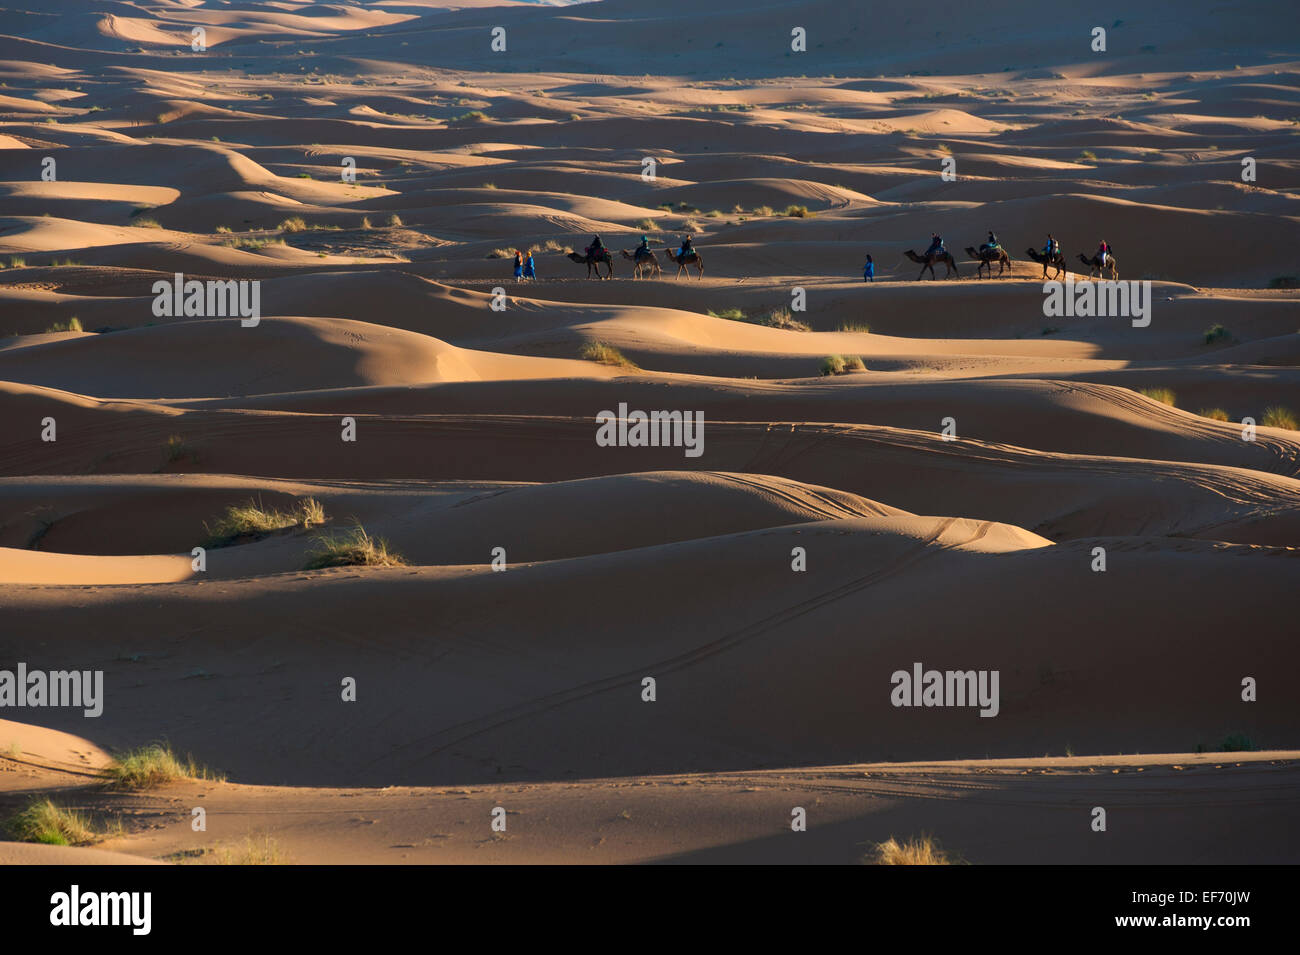 Tourists riding camels across sand dunes to a desert camp, Merzouga, Morocco - Stock Image